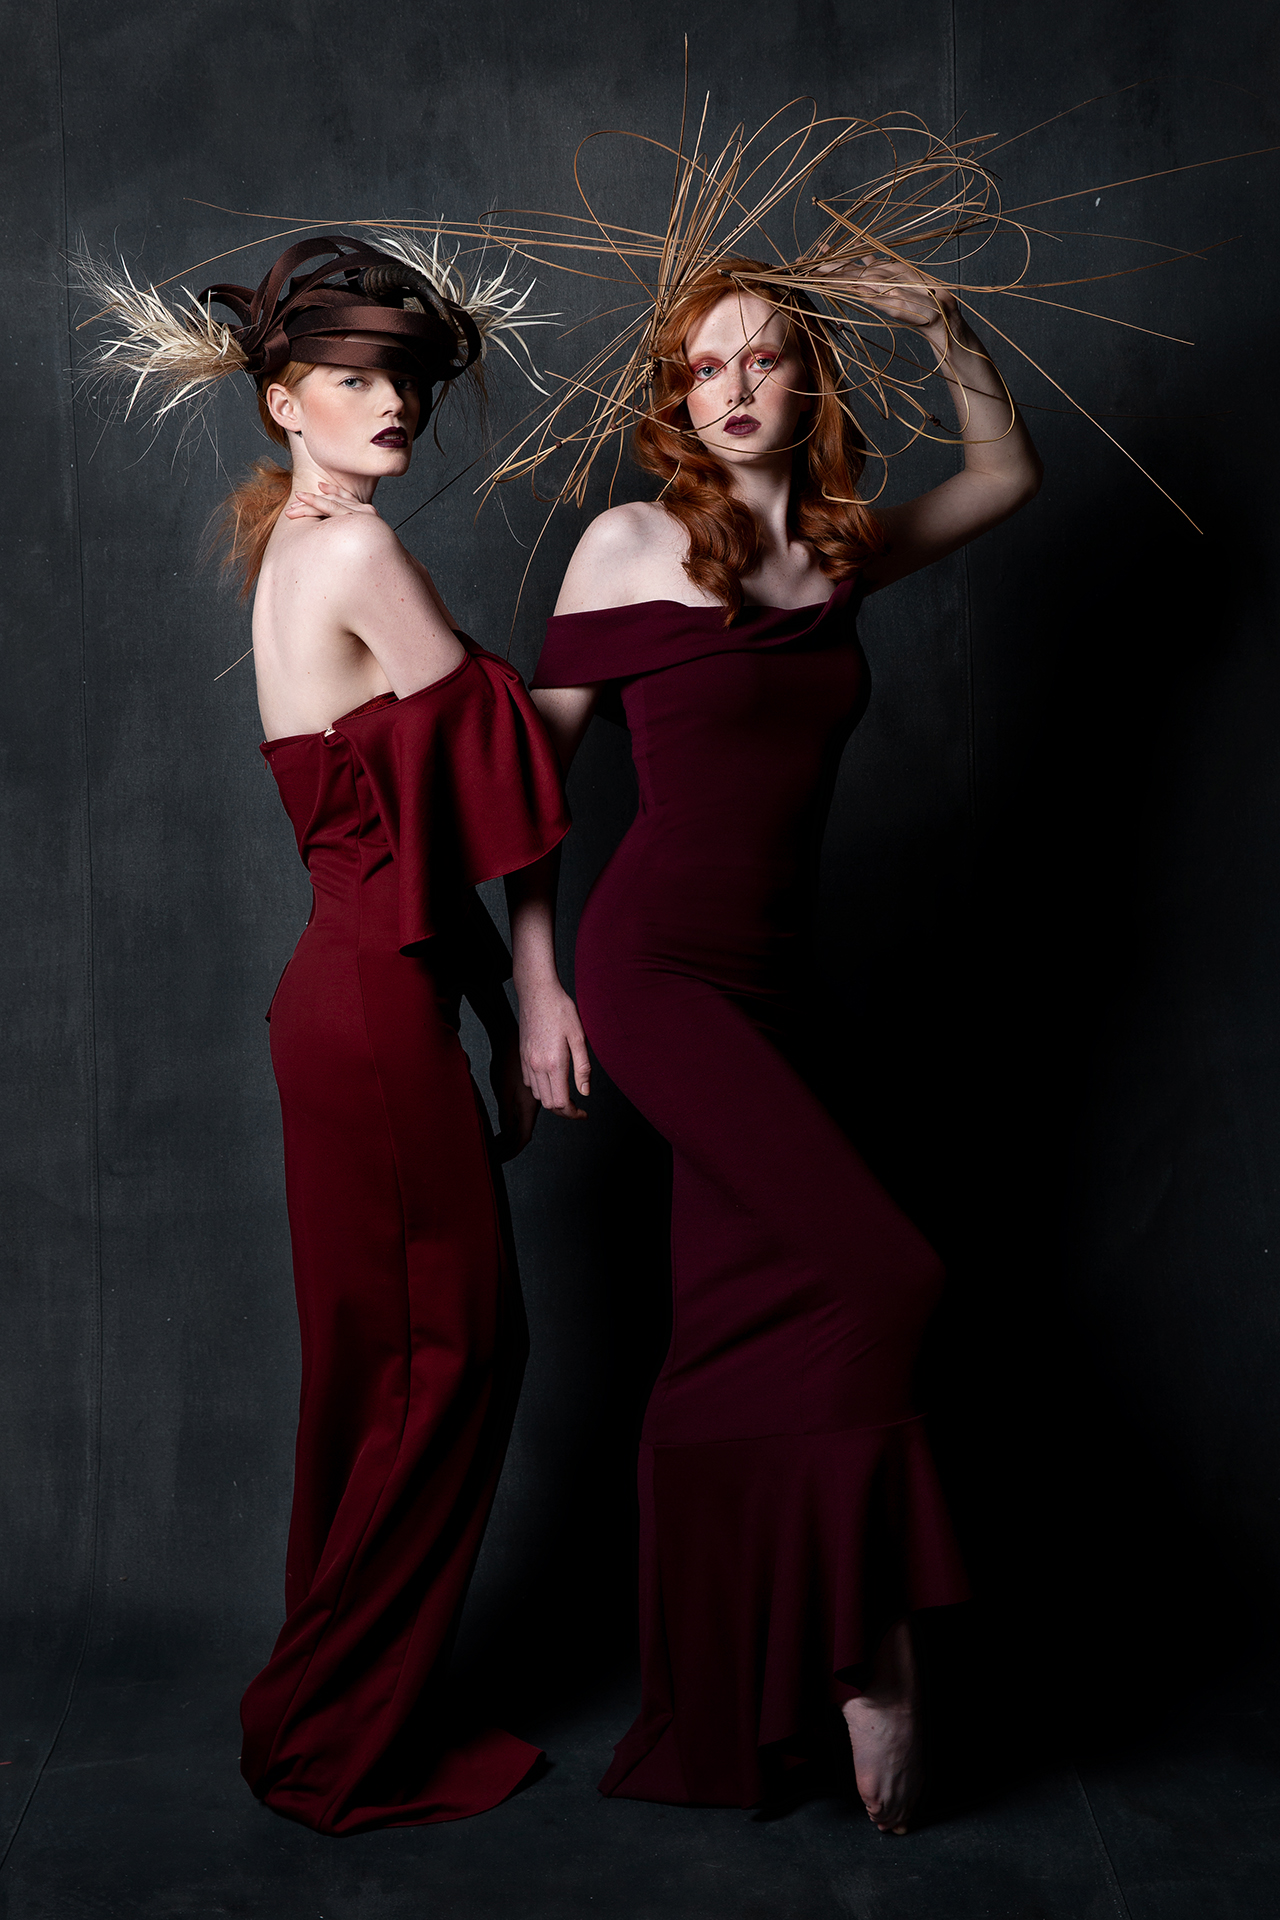 mark_and_naomi_toronto_fashion_photographers_david_dunkley_red_horn_iv.jpg